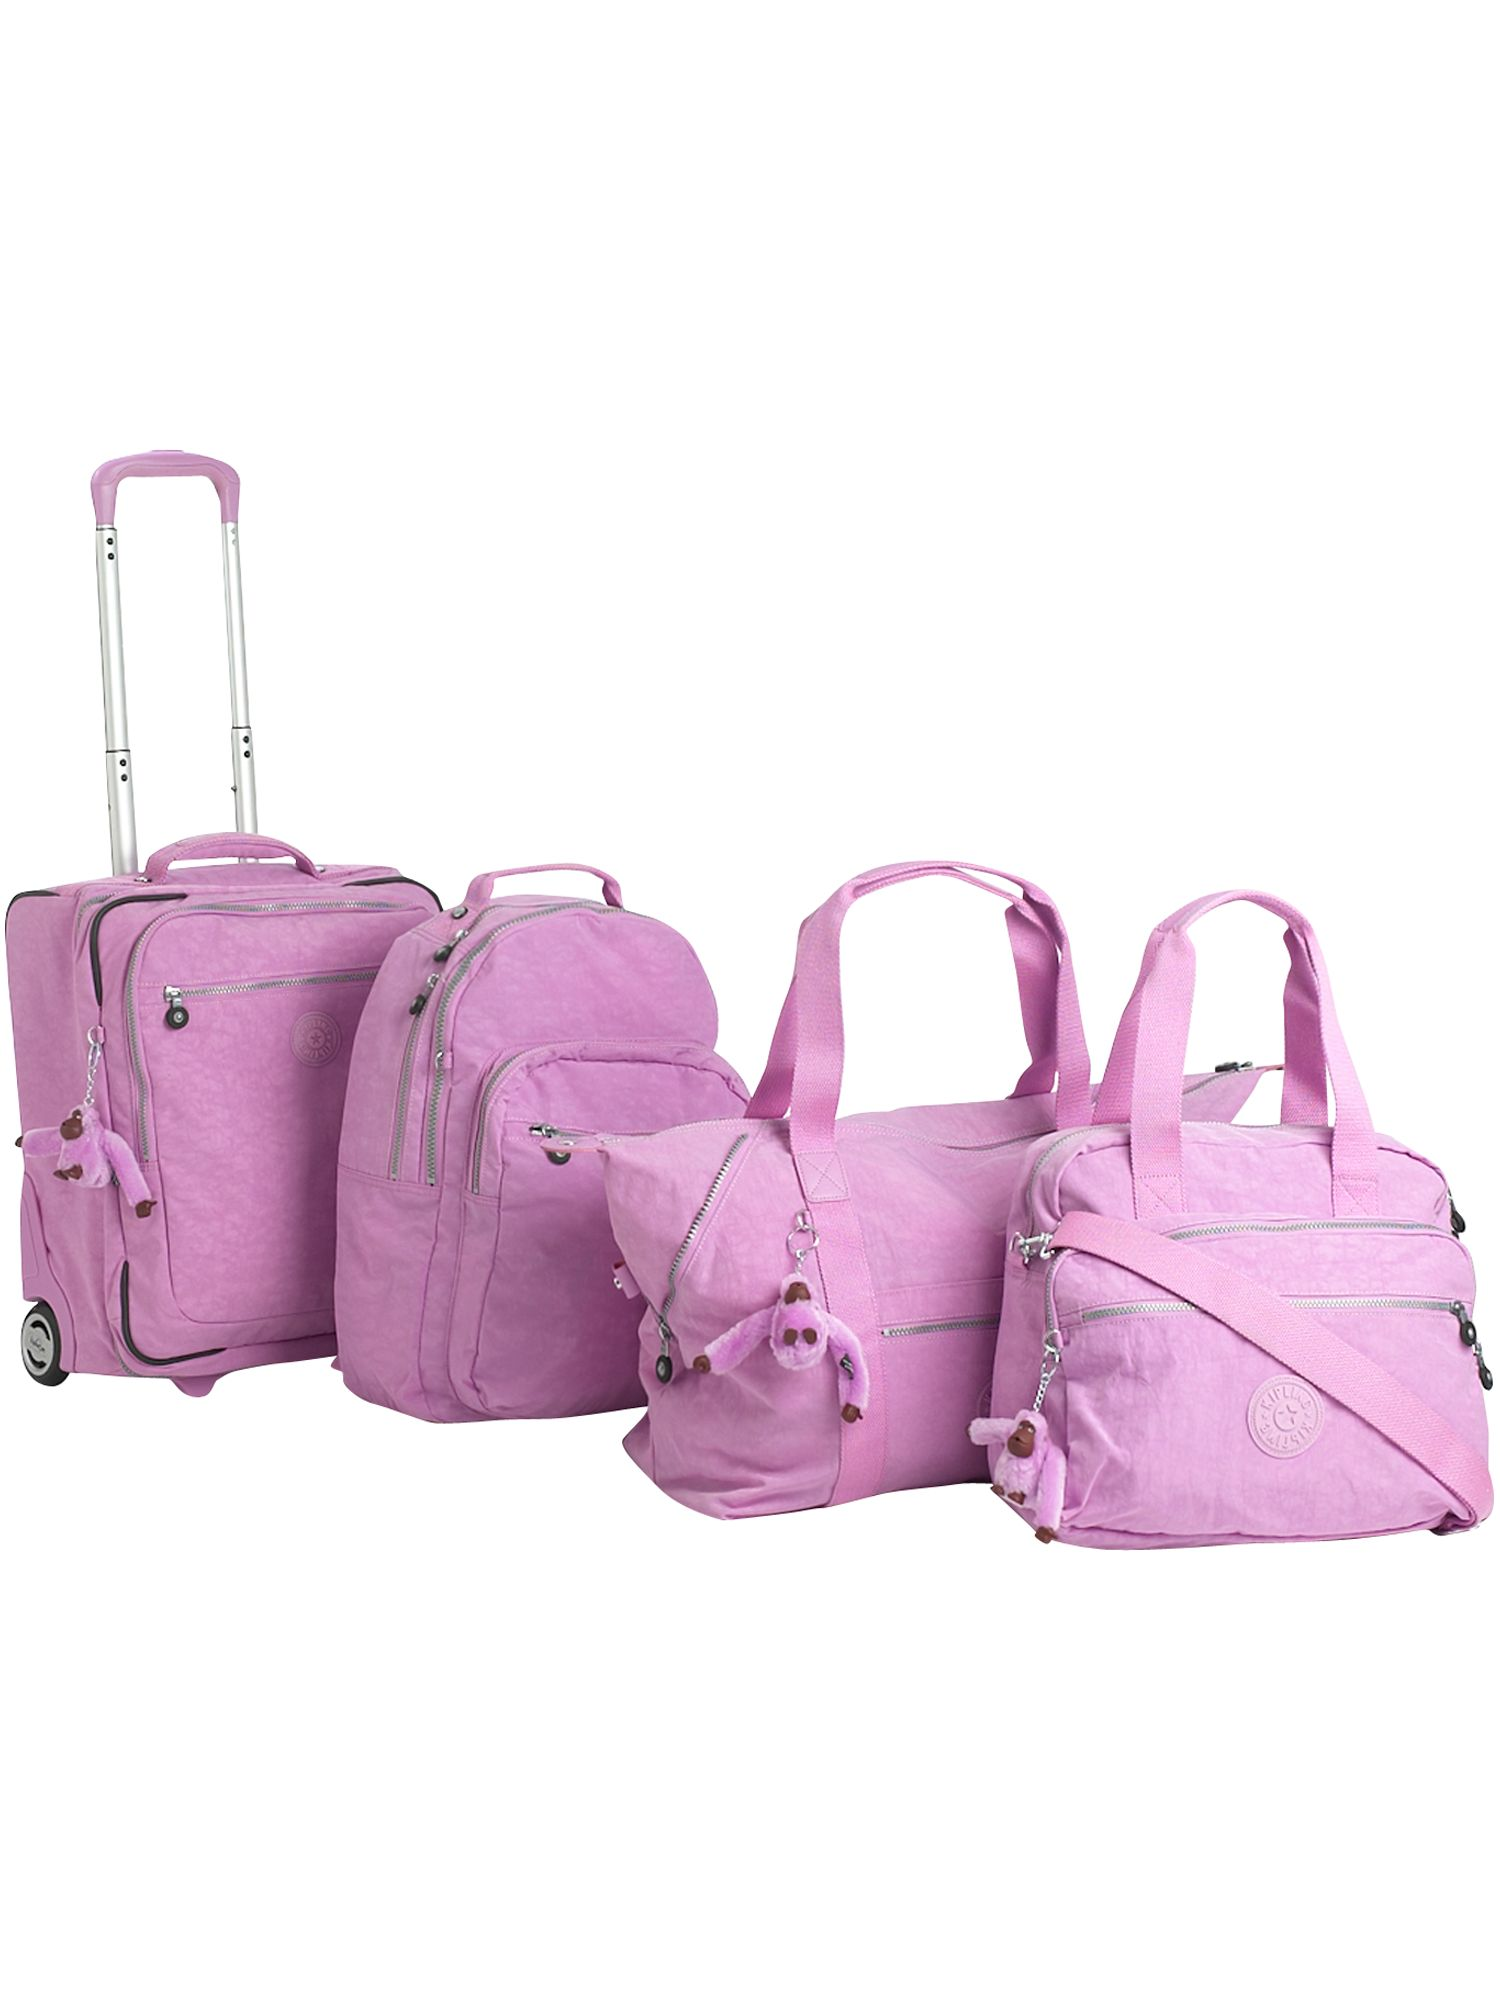 Basic Art M travel tote ultra pink